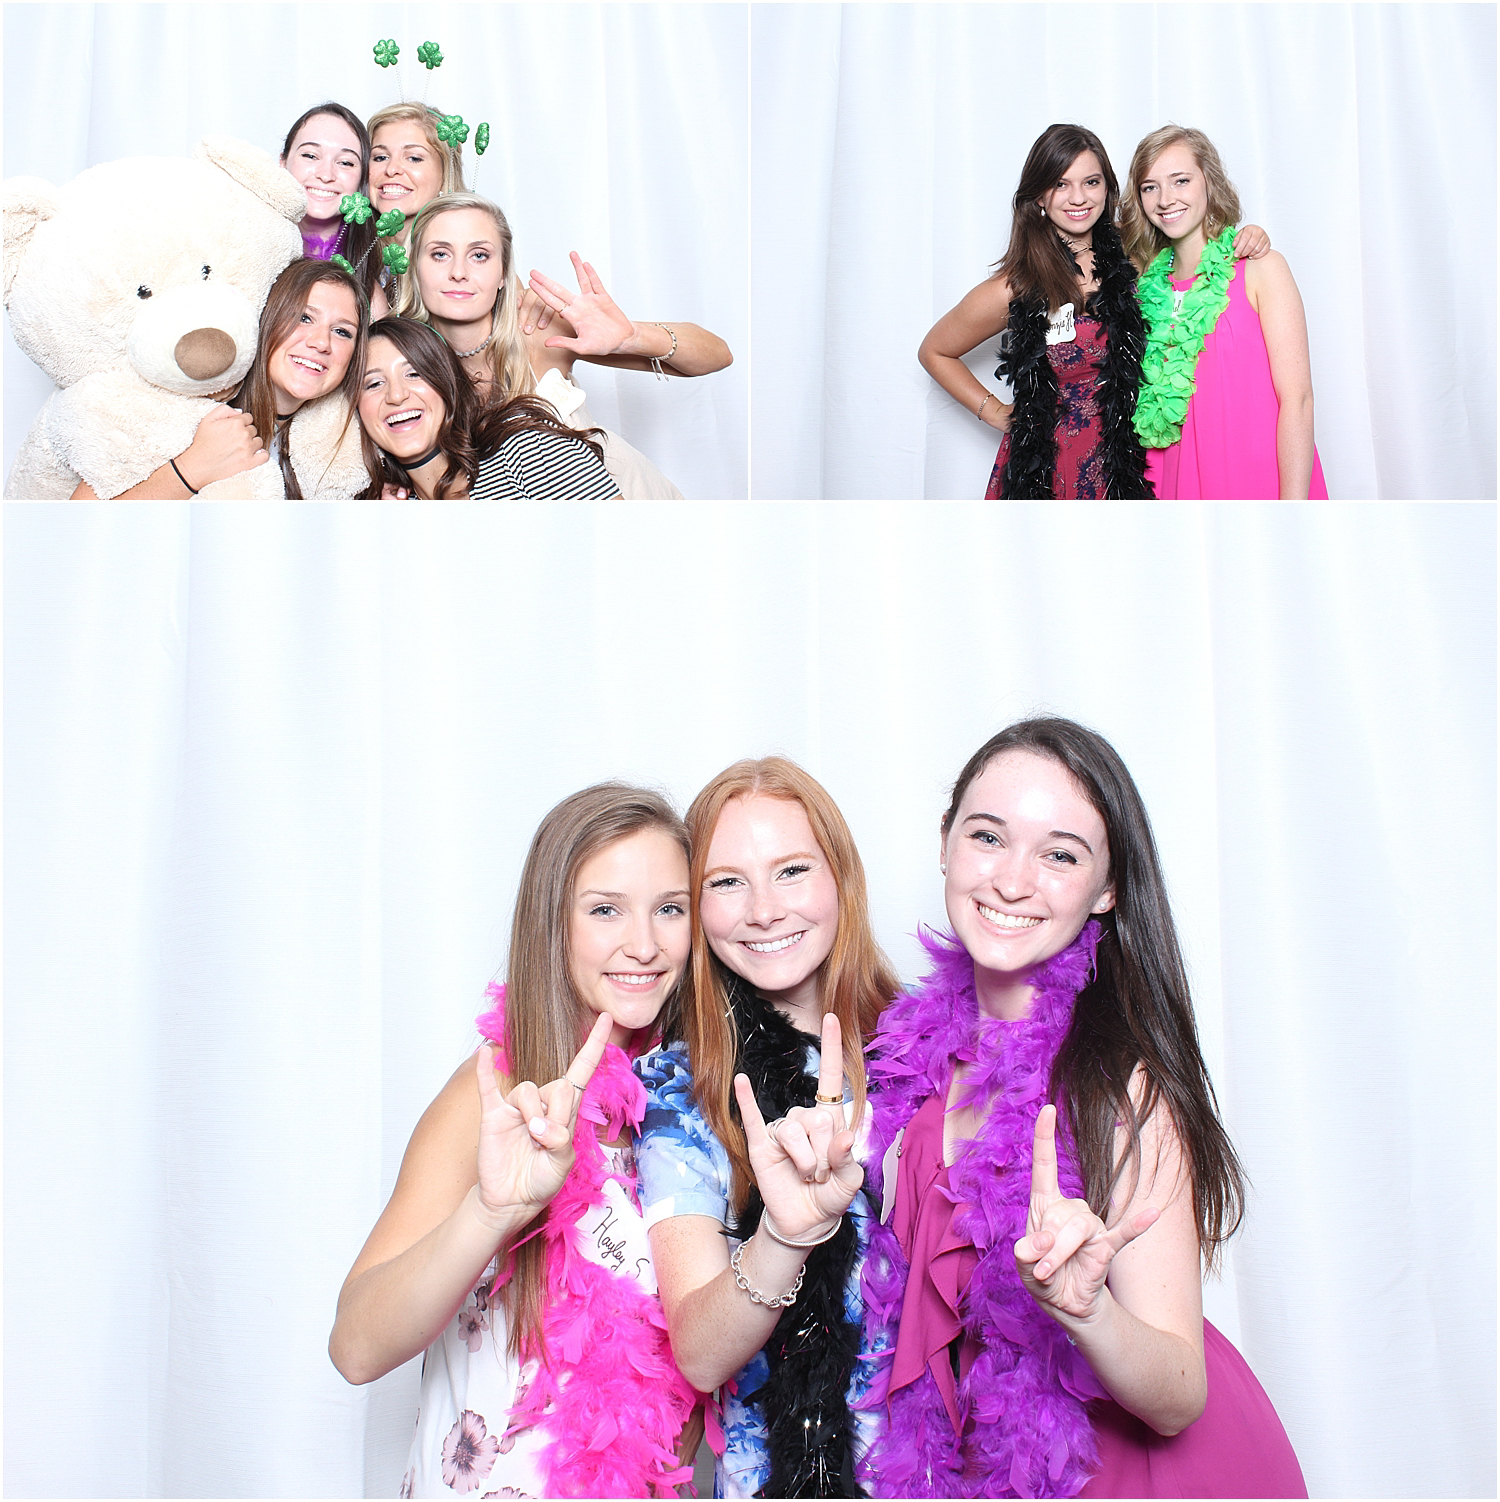 Austin Photo Booth - Kappa Delta Bid Day-3.jpg